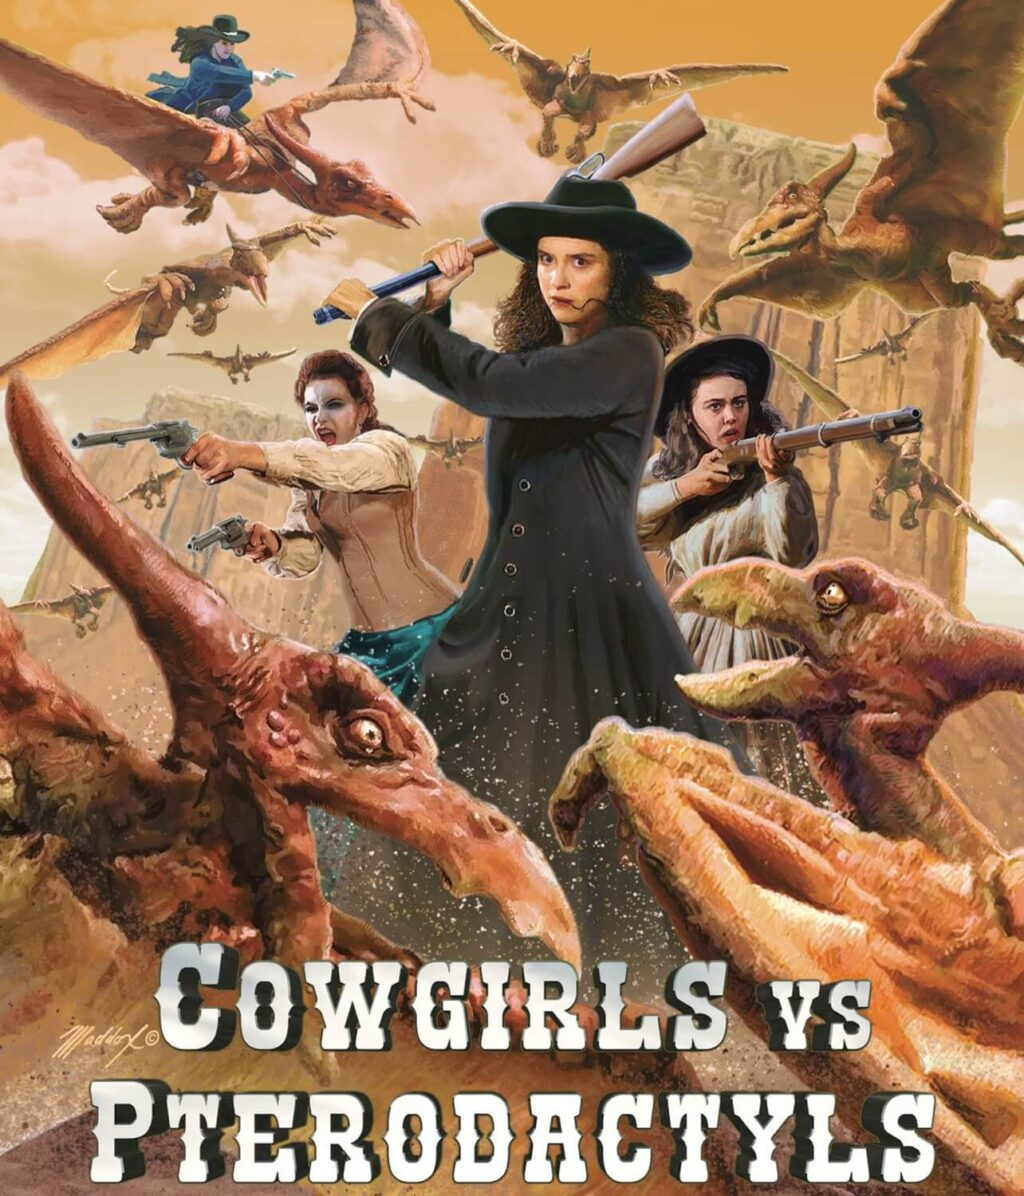 Cowgirls vs Pterodactyls poster 1 1024x1196 - Prehistoric Flying Reptiles Invade The Wild West In COWGIRLS VS. PTERODACTYLS Trailer